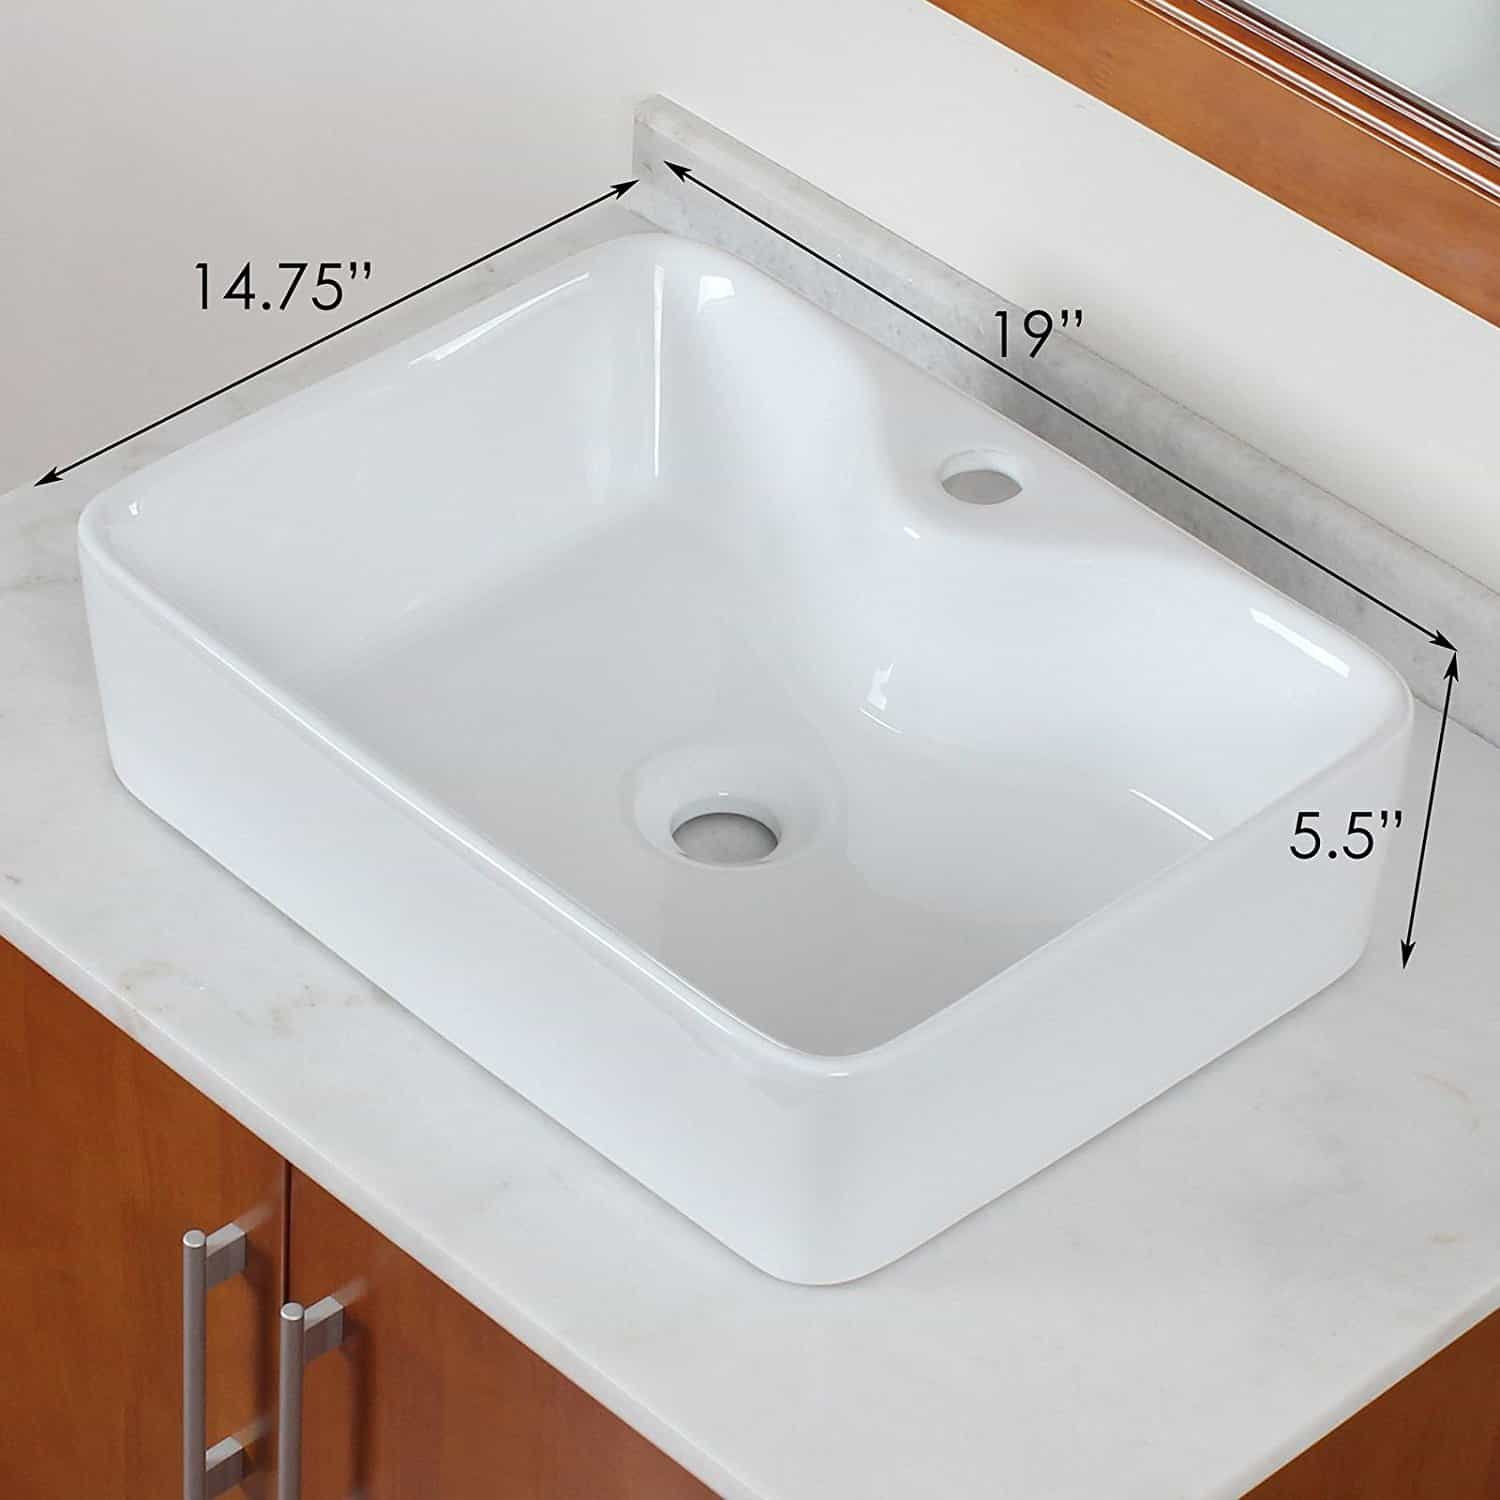 Best Bathroom Sinks 2018 Best For Small Spaces